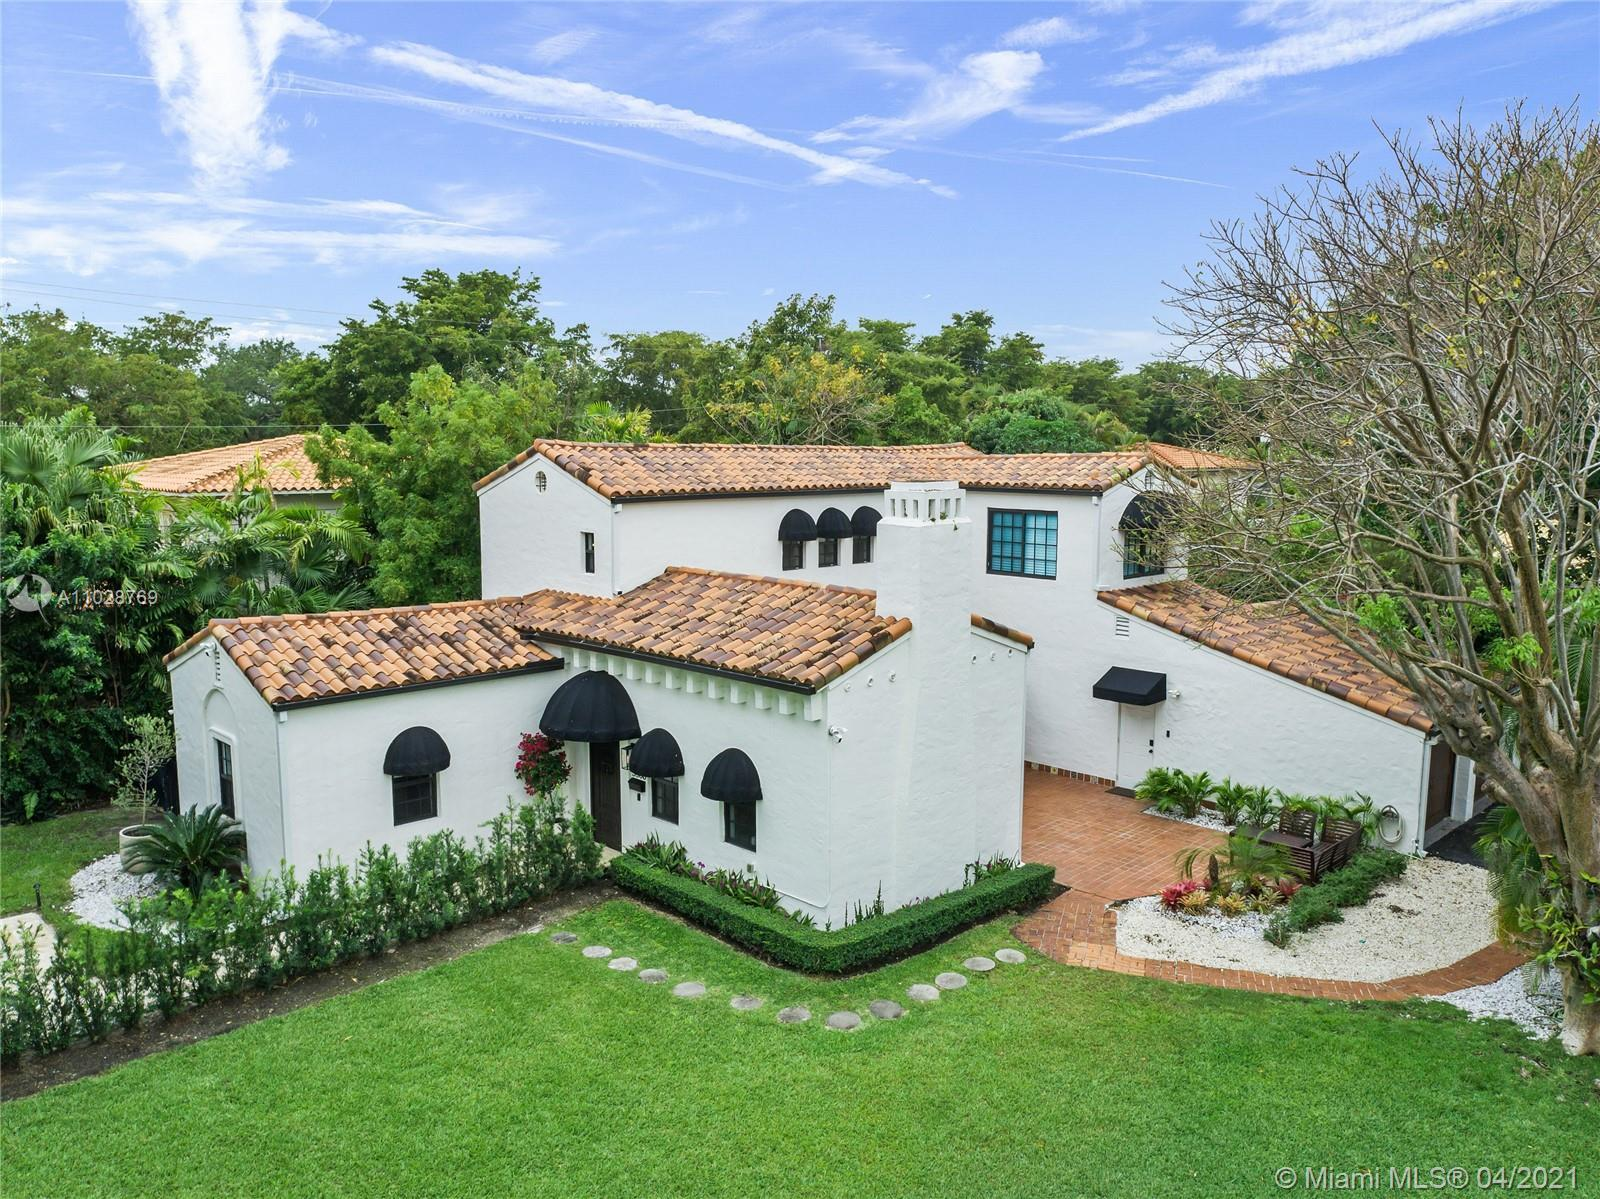 Stunning 2-story home fully renovated located on the corner of Alhambra Cr and Miller Rd. This home